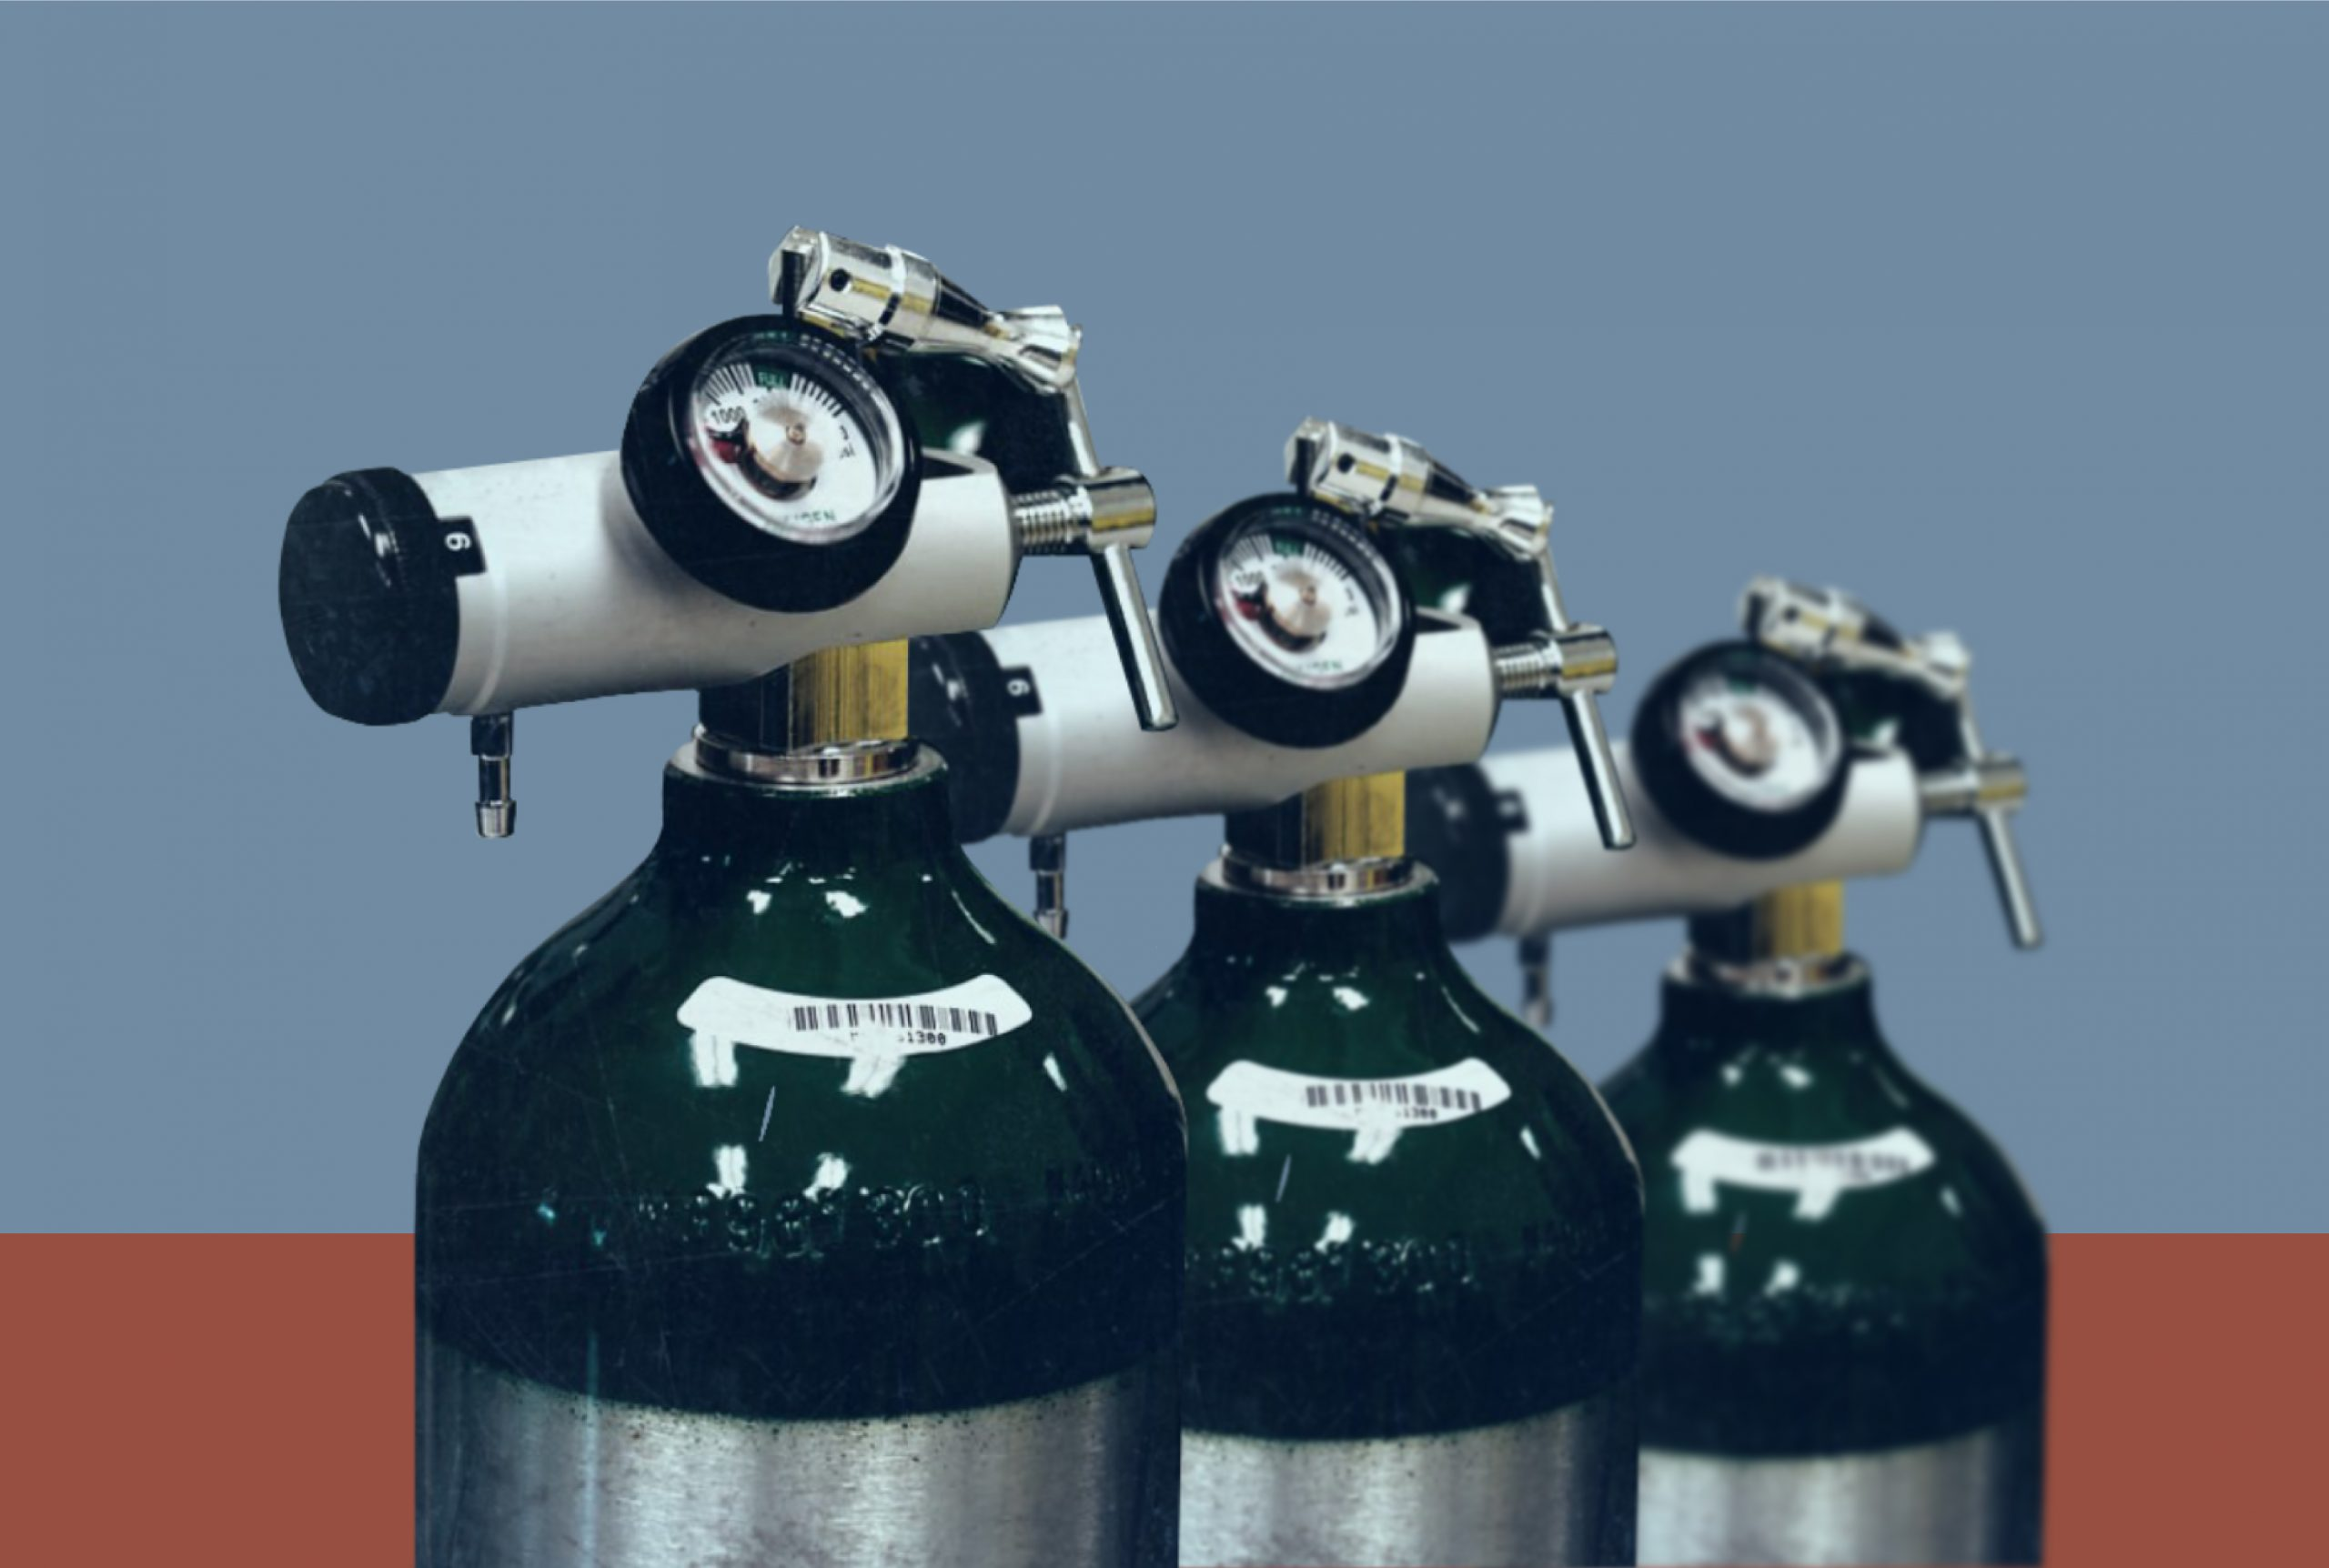 Image of an oxygen tank.